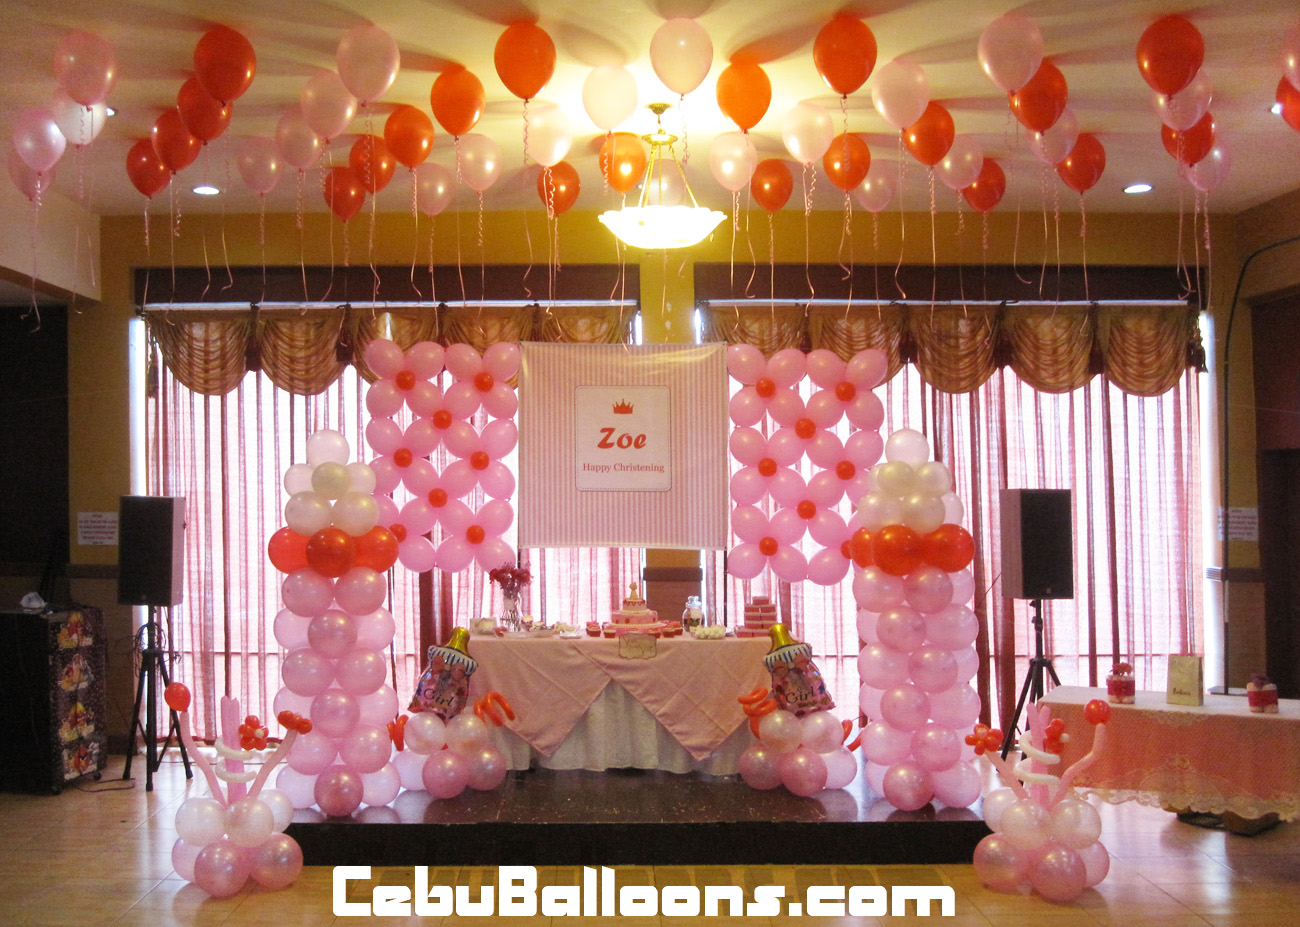 Bongga decor packages cebu balloons and party supplies for Decoration image